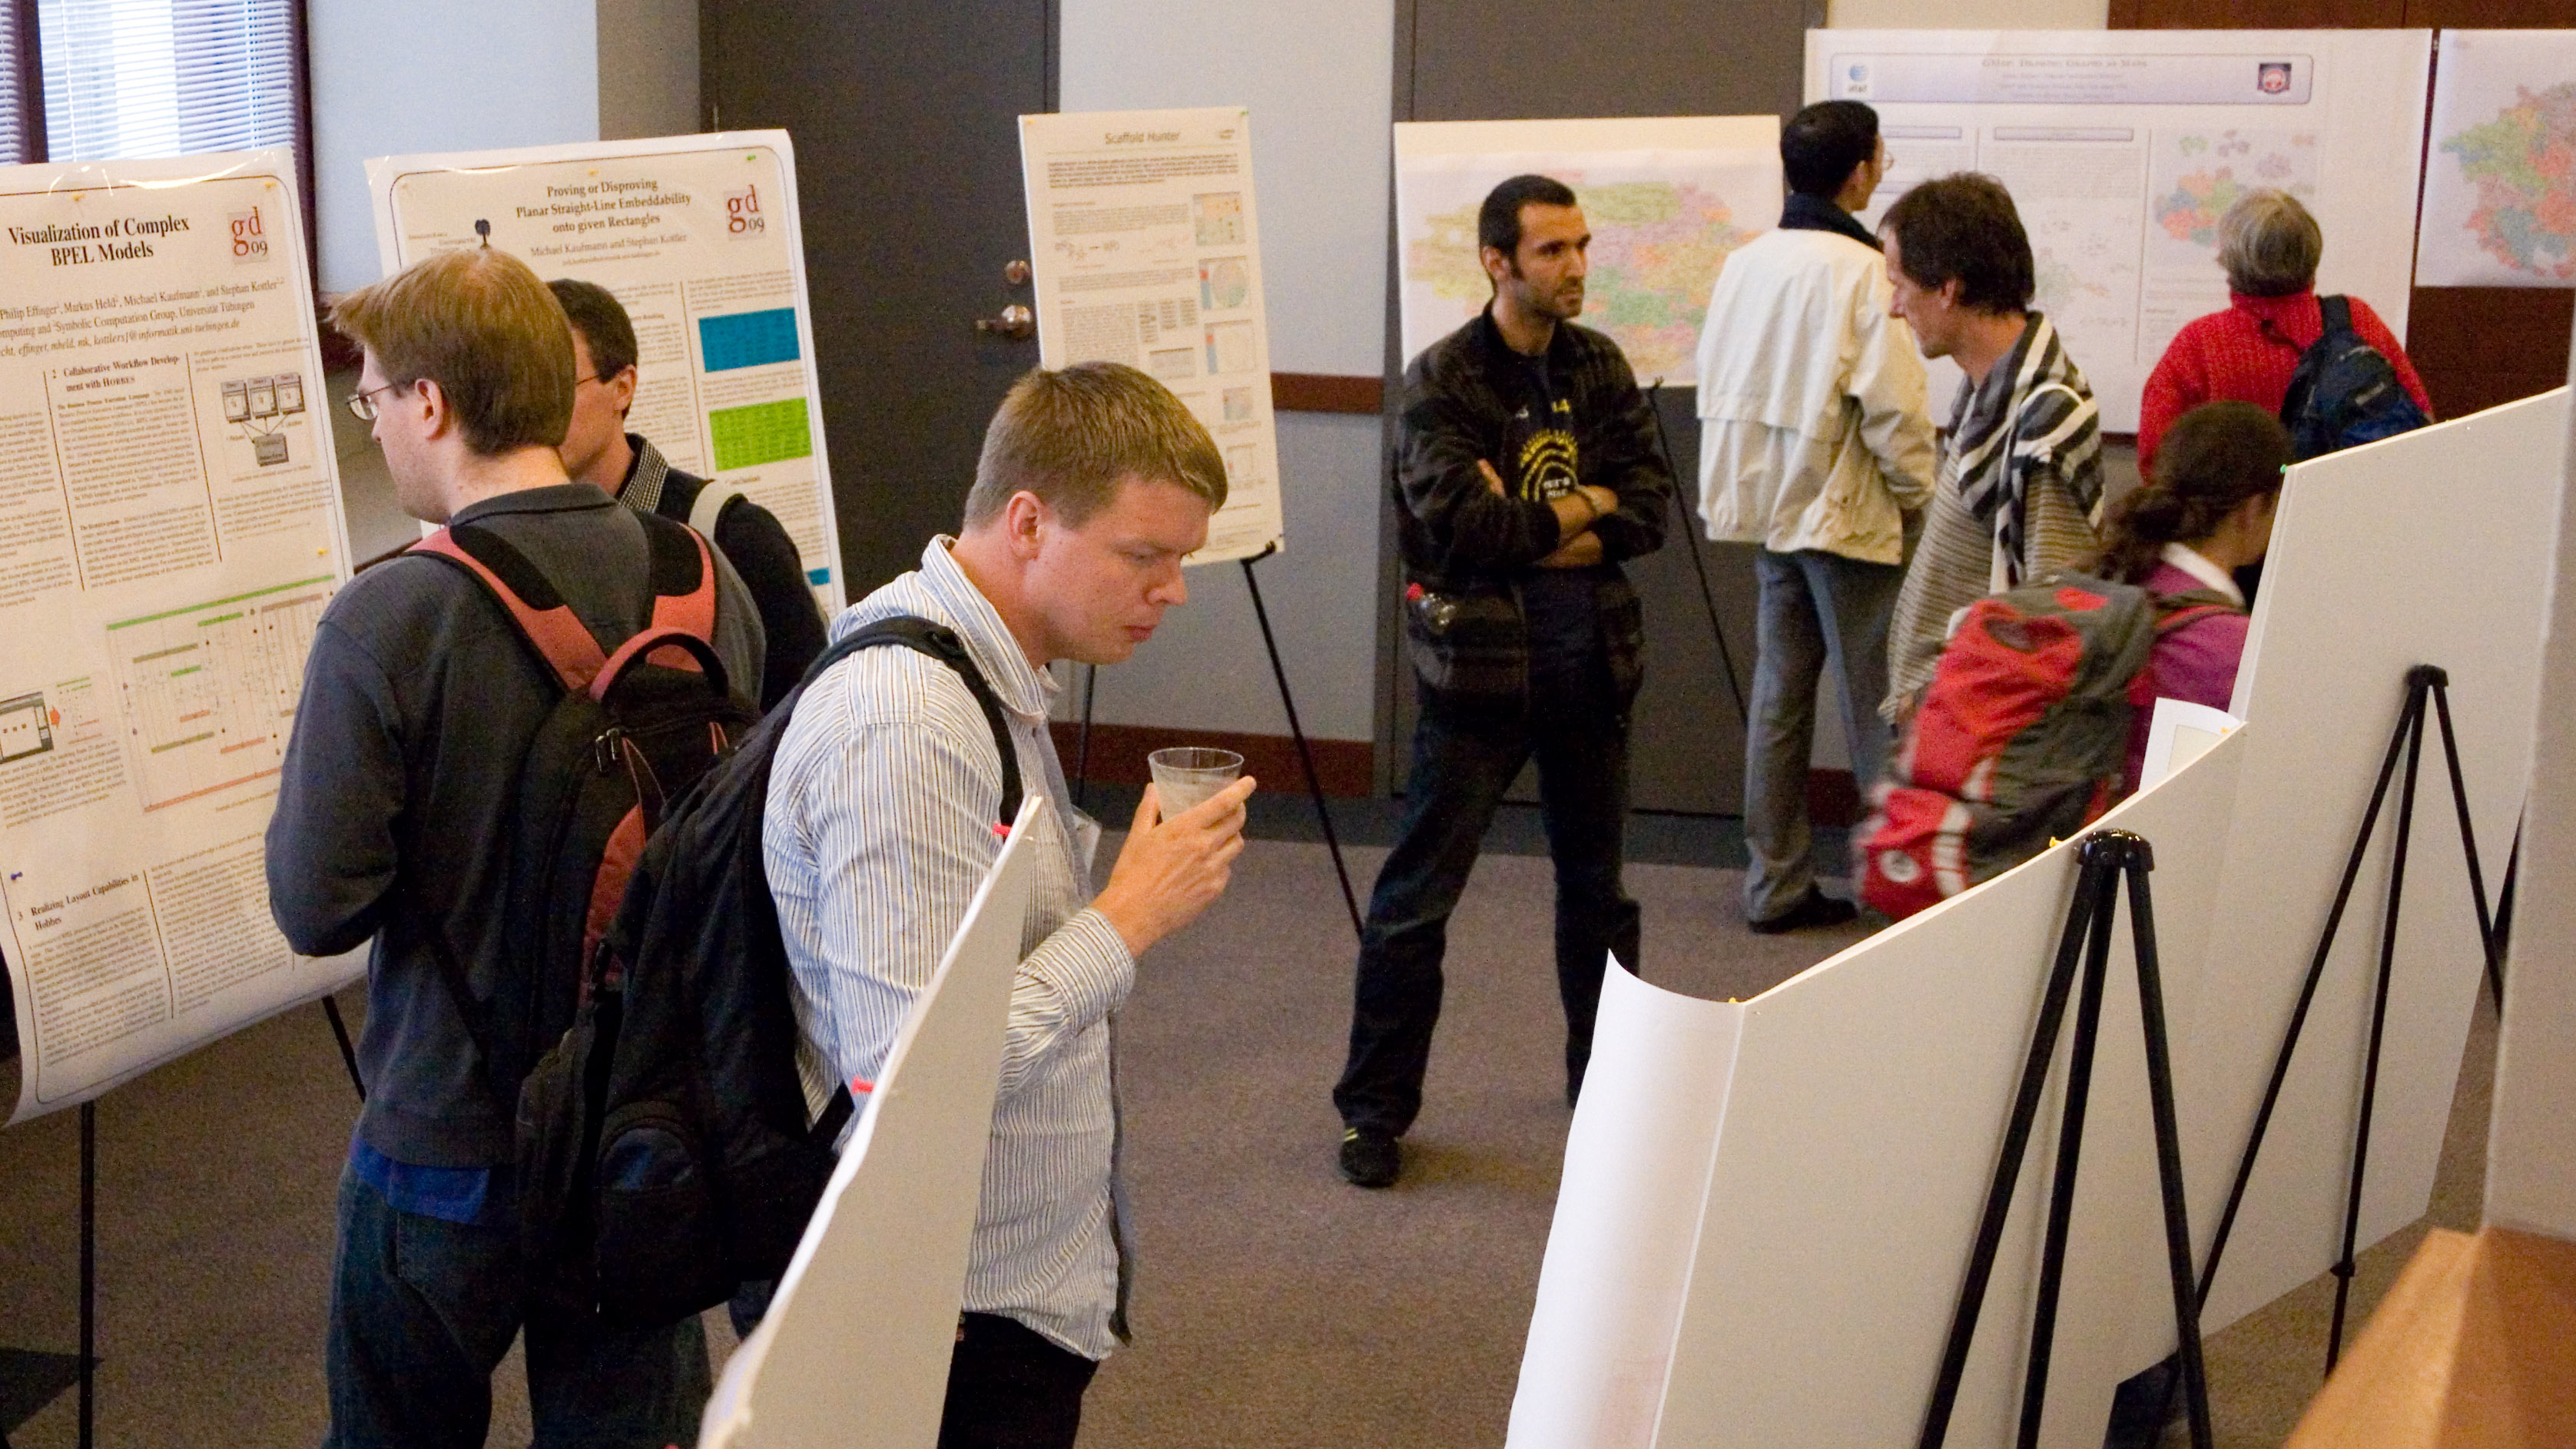 The poster session at the 17th International Symposium on Graph Drawing, Chicago, 2009. By David Eppstein